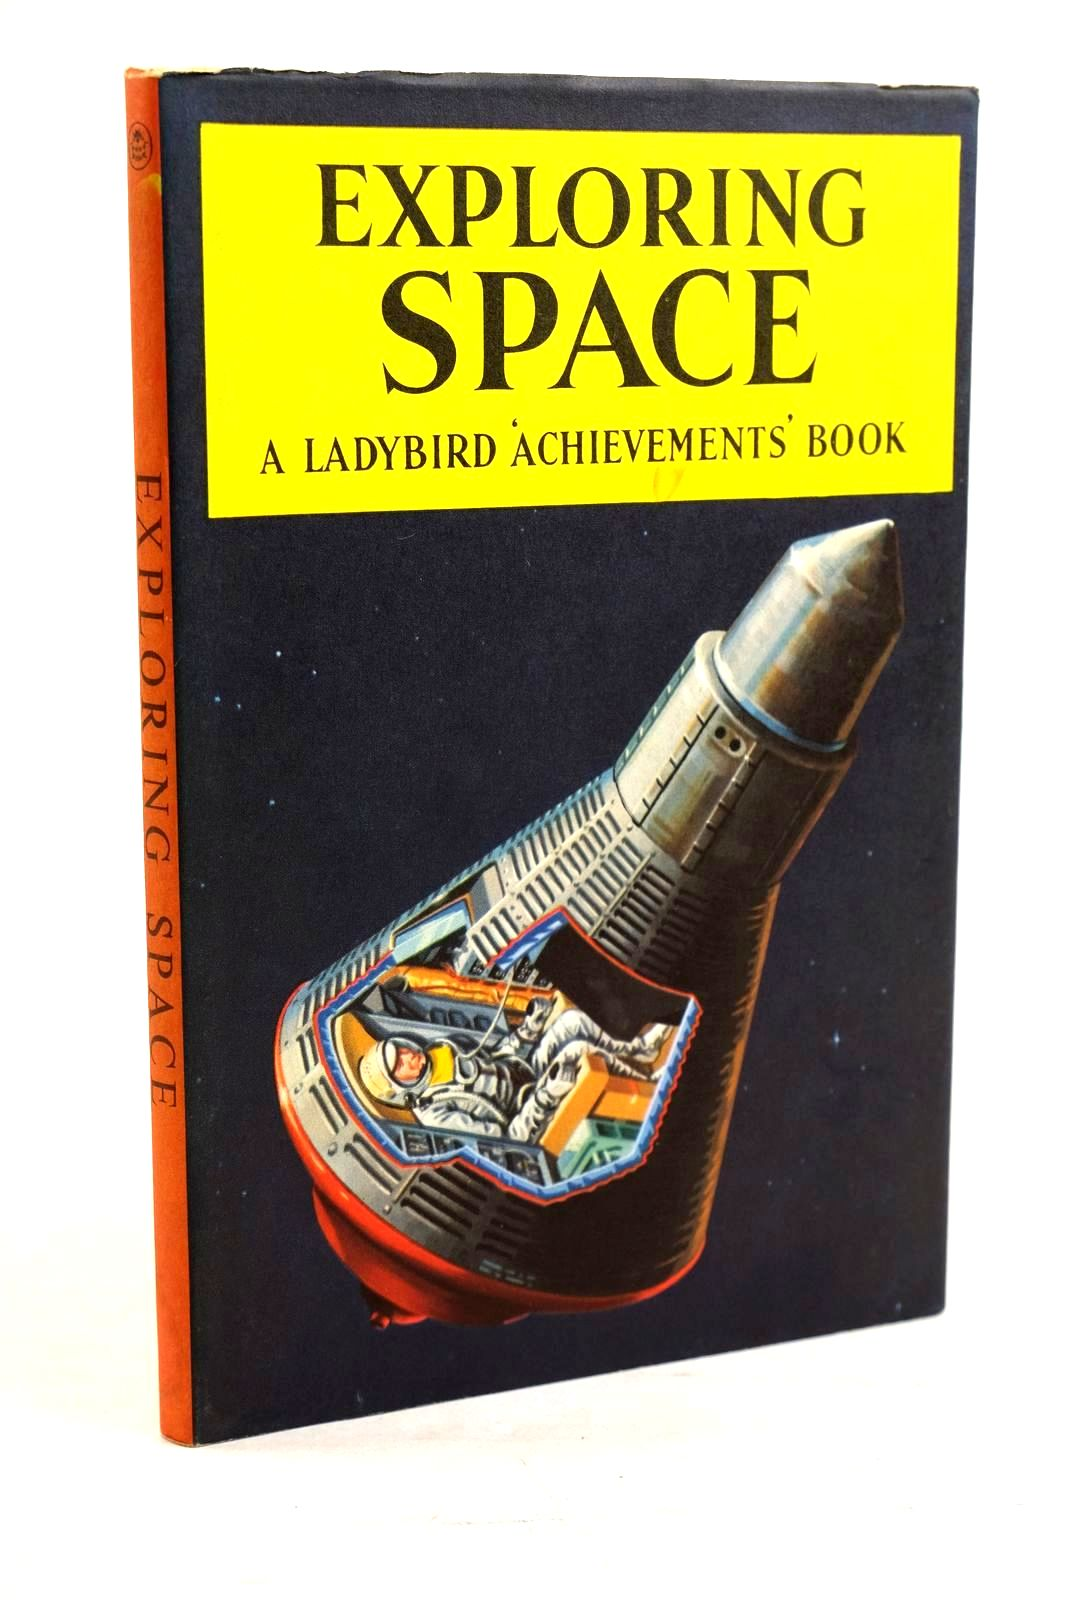 Photo of EXPLORING SPACE written by Worvill, Roy illustrated by Knight, B. published by Wills & Hepworth Ltd. (STOCK CODE: 1320643)  for sale by Stella & Rose's Books